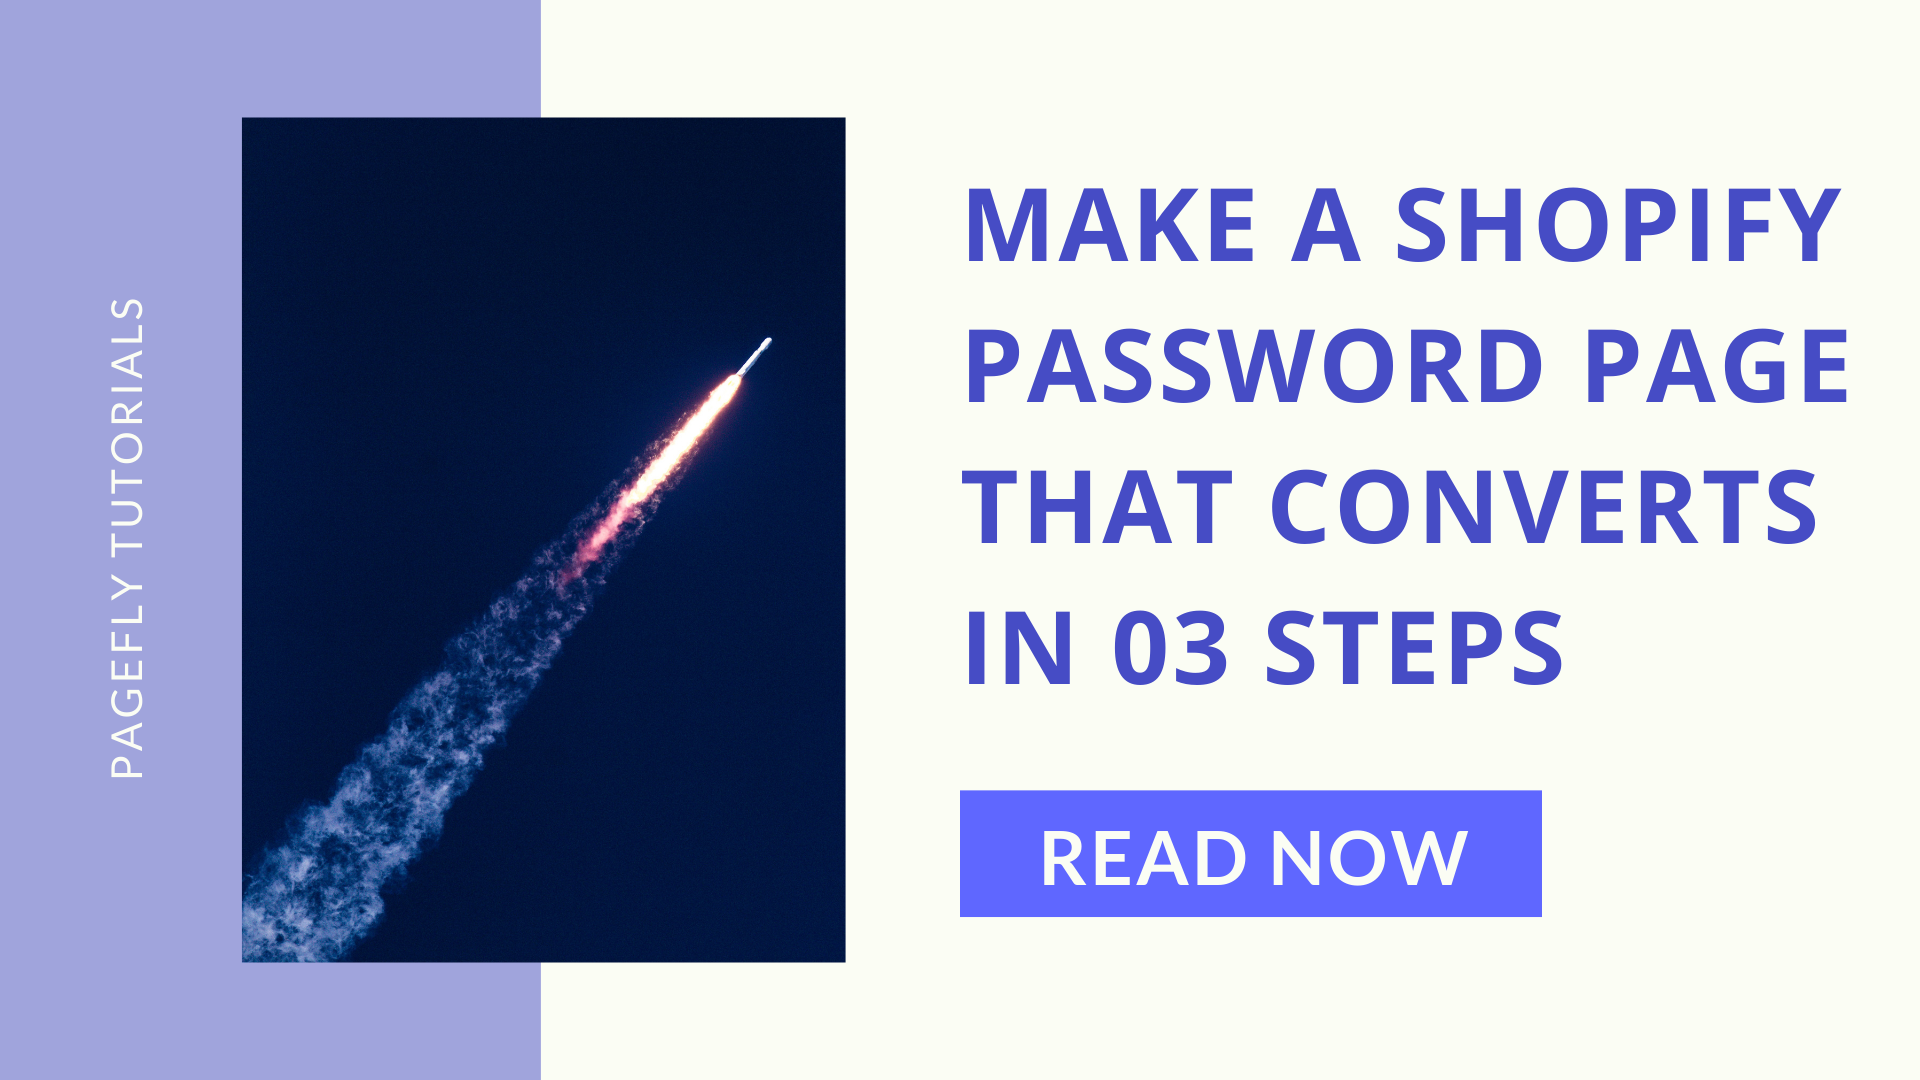 Shopify password page